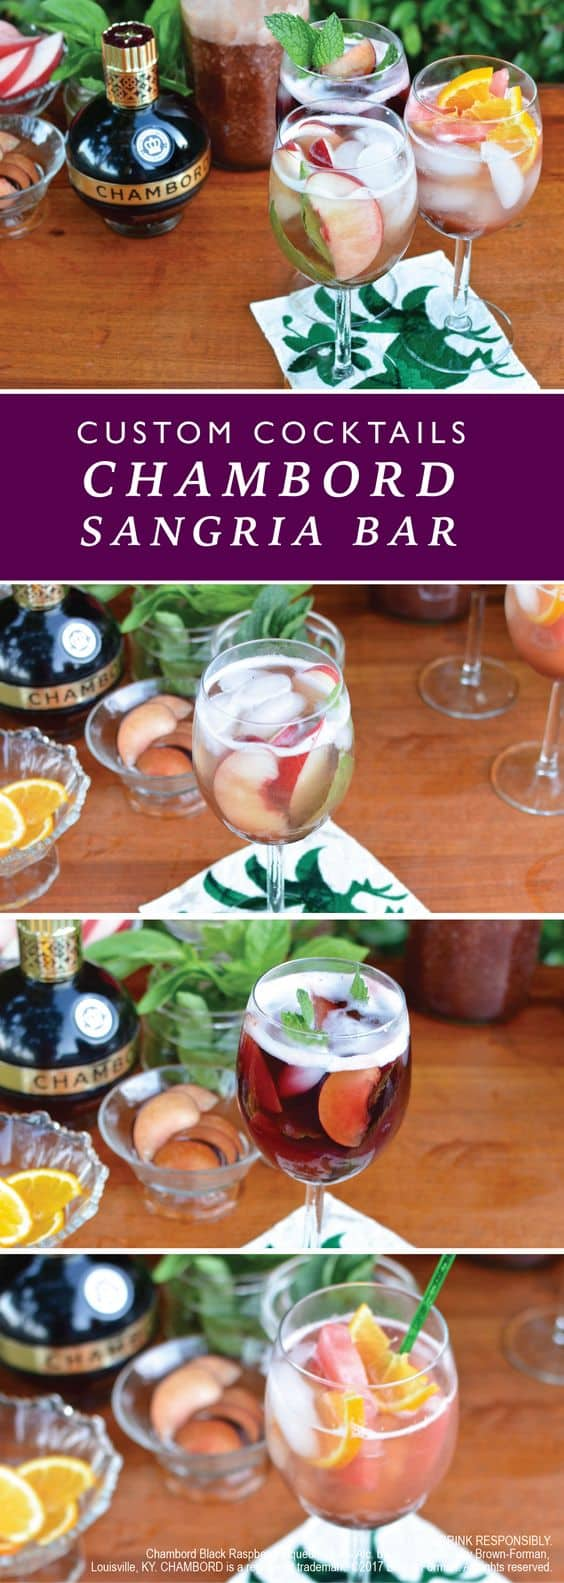 A DIY Chambord Sangria Bar is where it's at this summer! You make the fruity sangria base with Chambord and nectarines and let your friends do the rest.